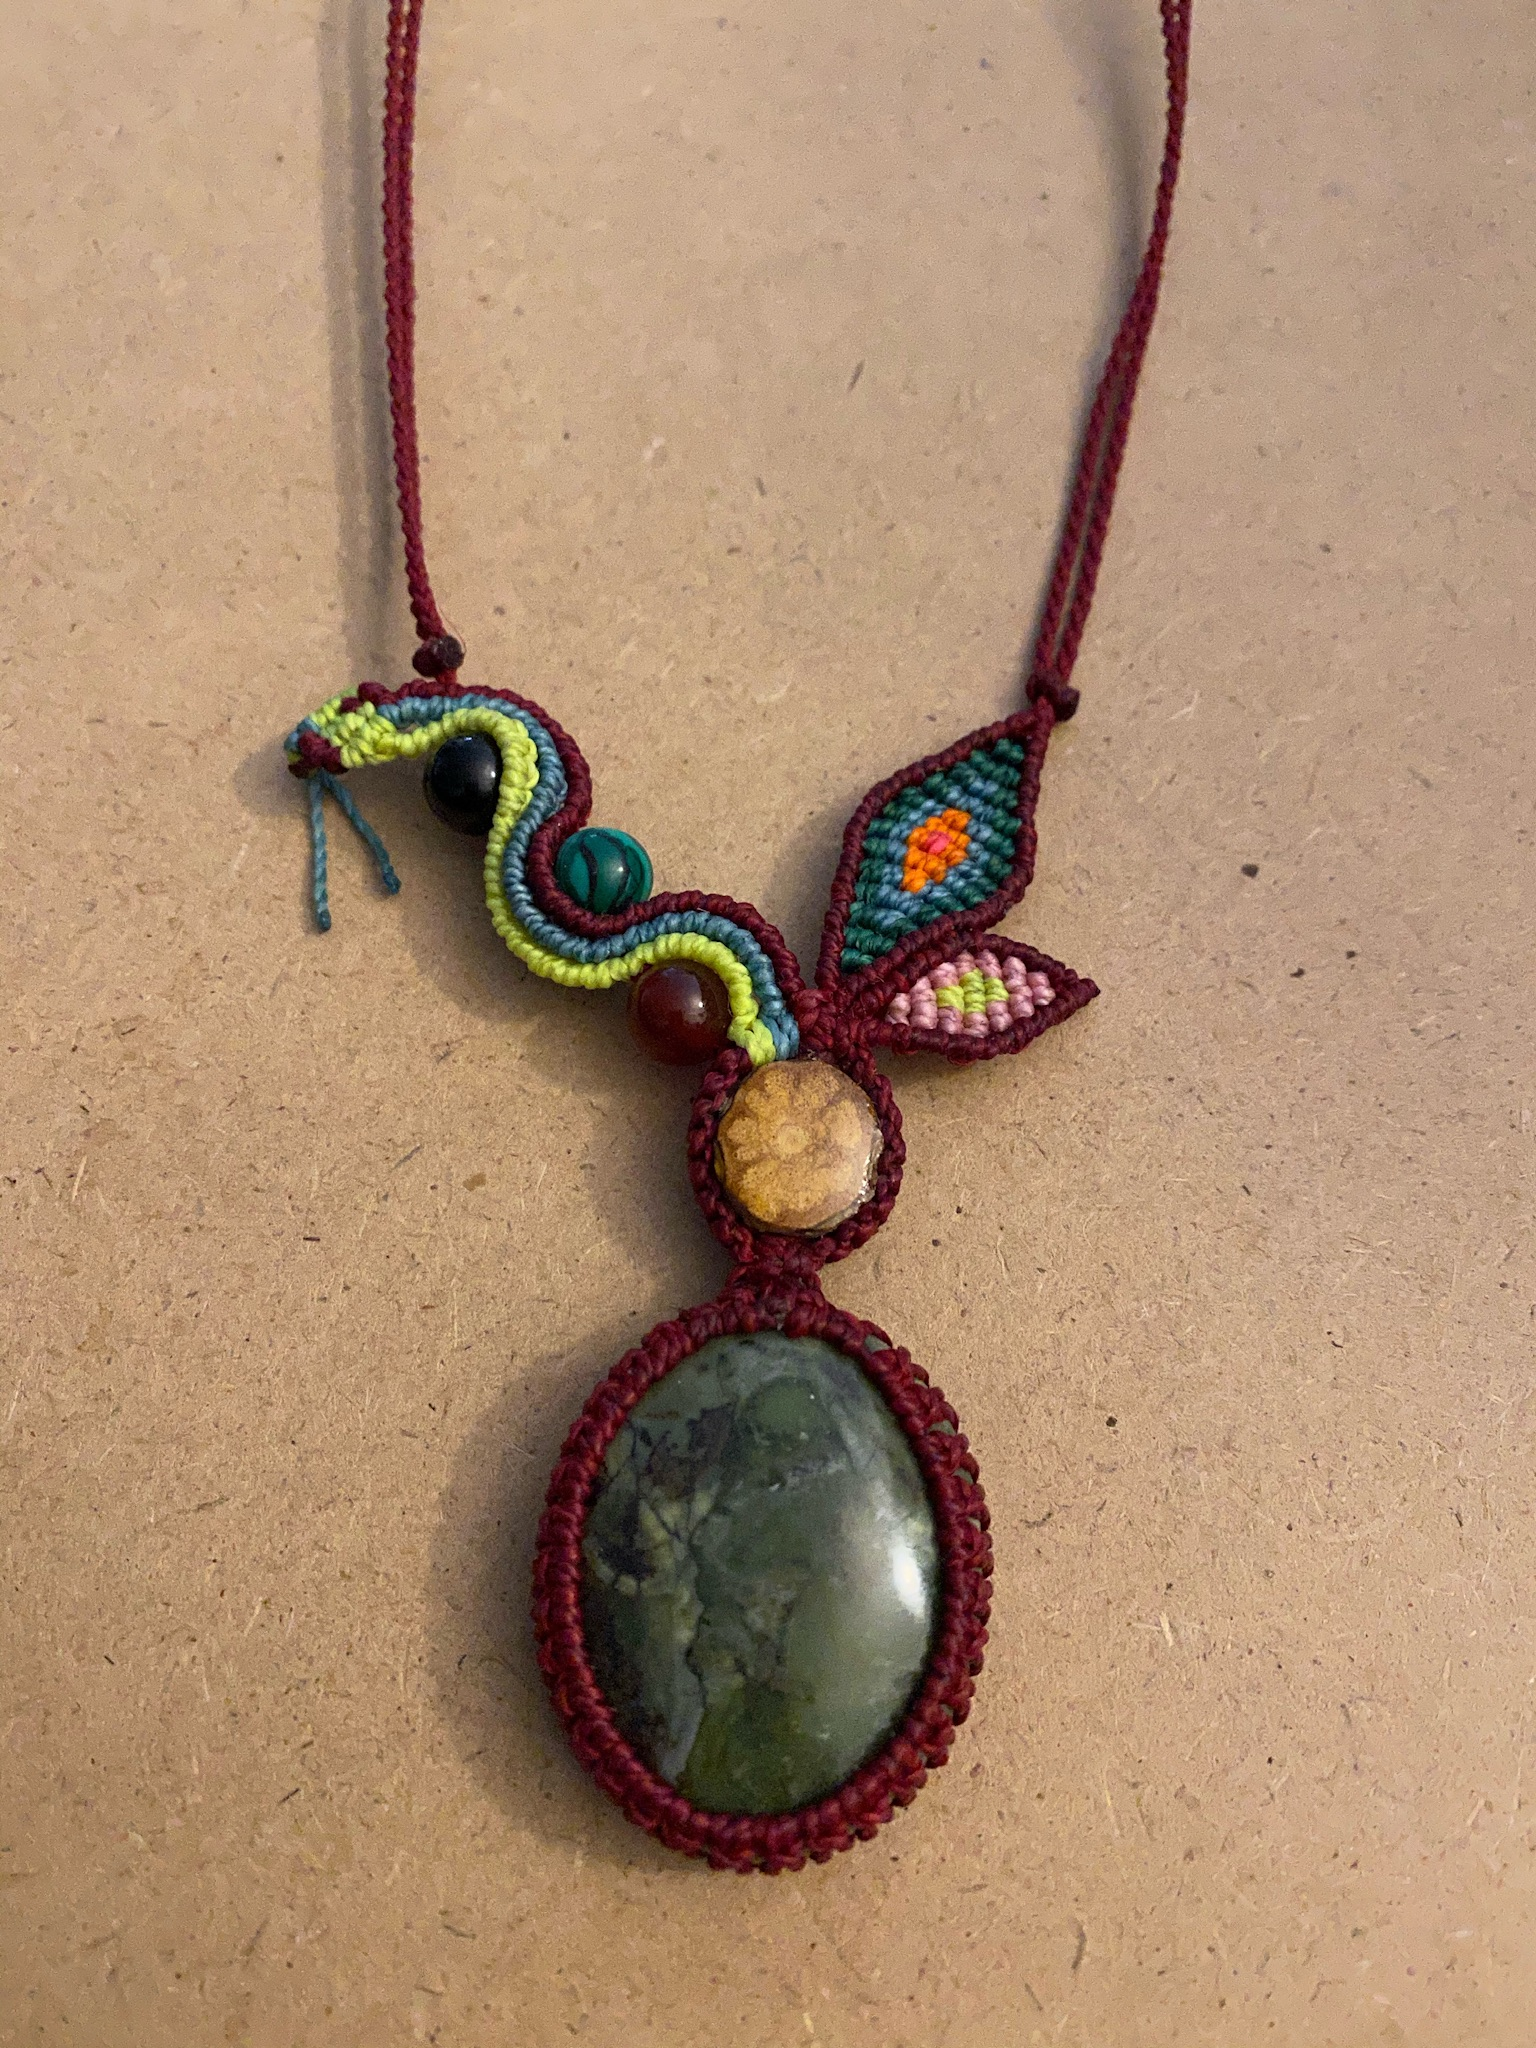 Aya & Serpentine Oval with Green Serpent